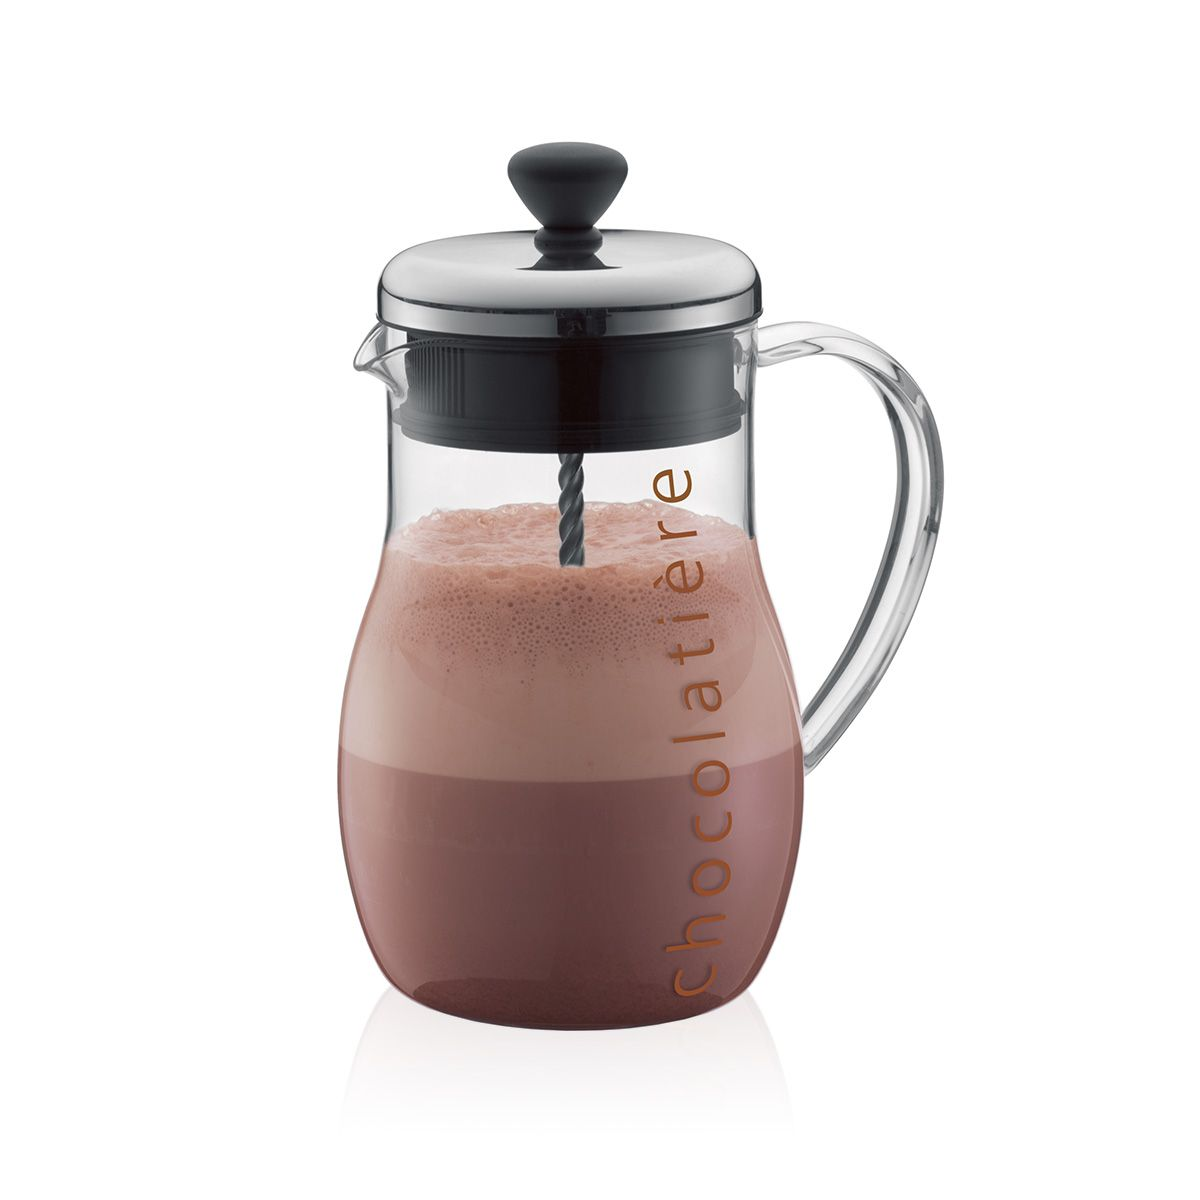 Chocolate Maker - Bodum